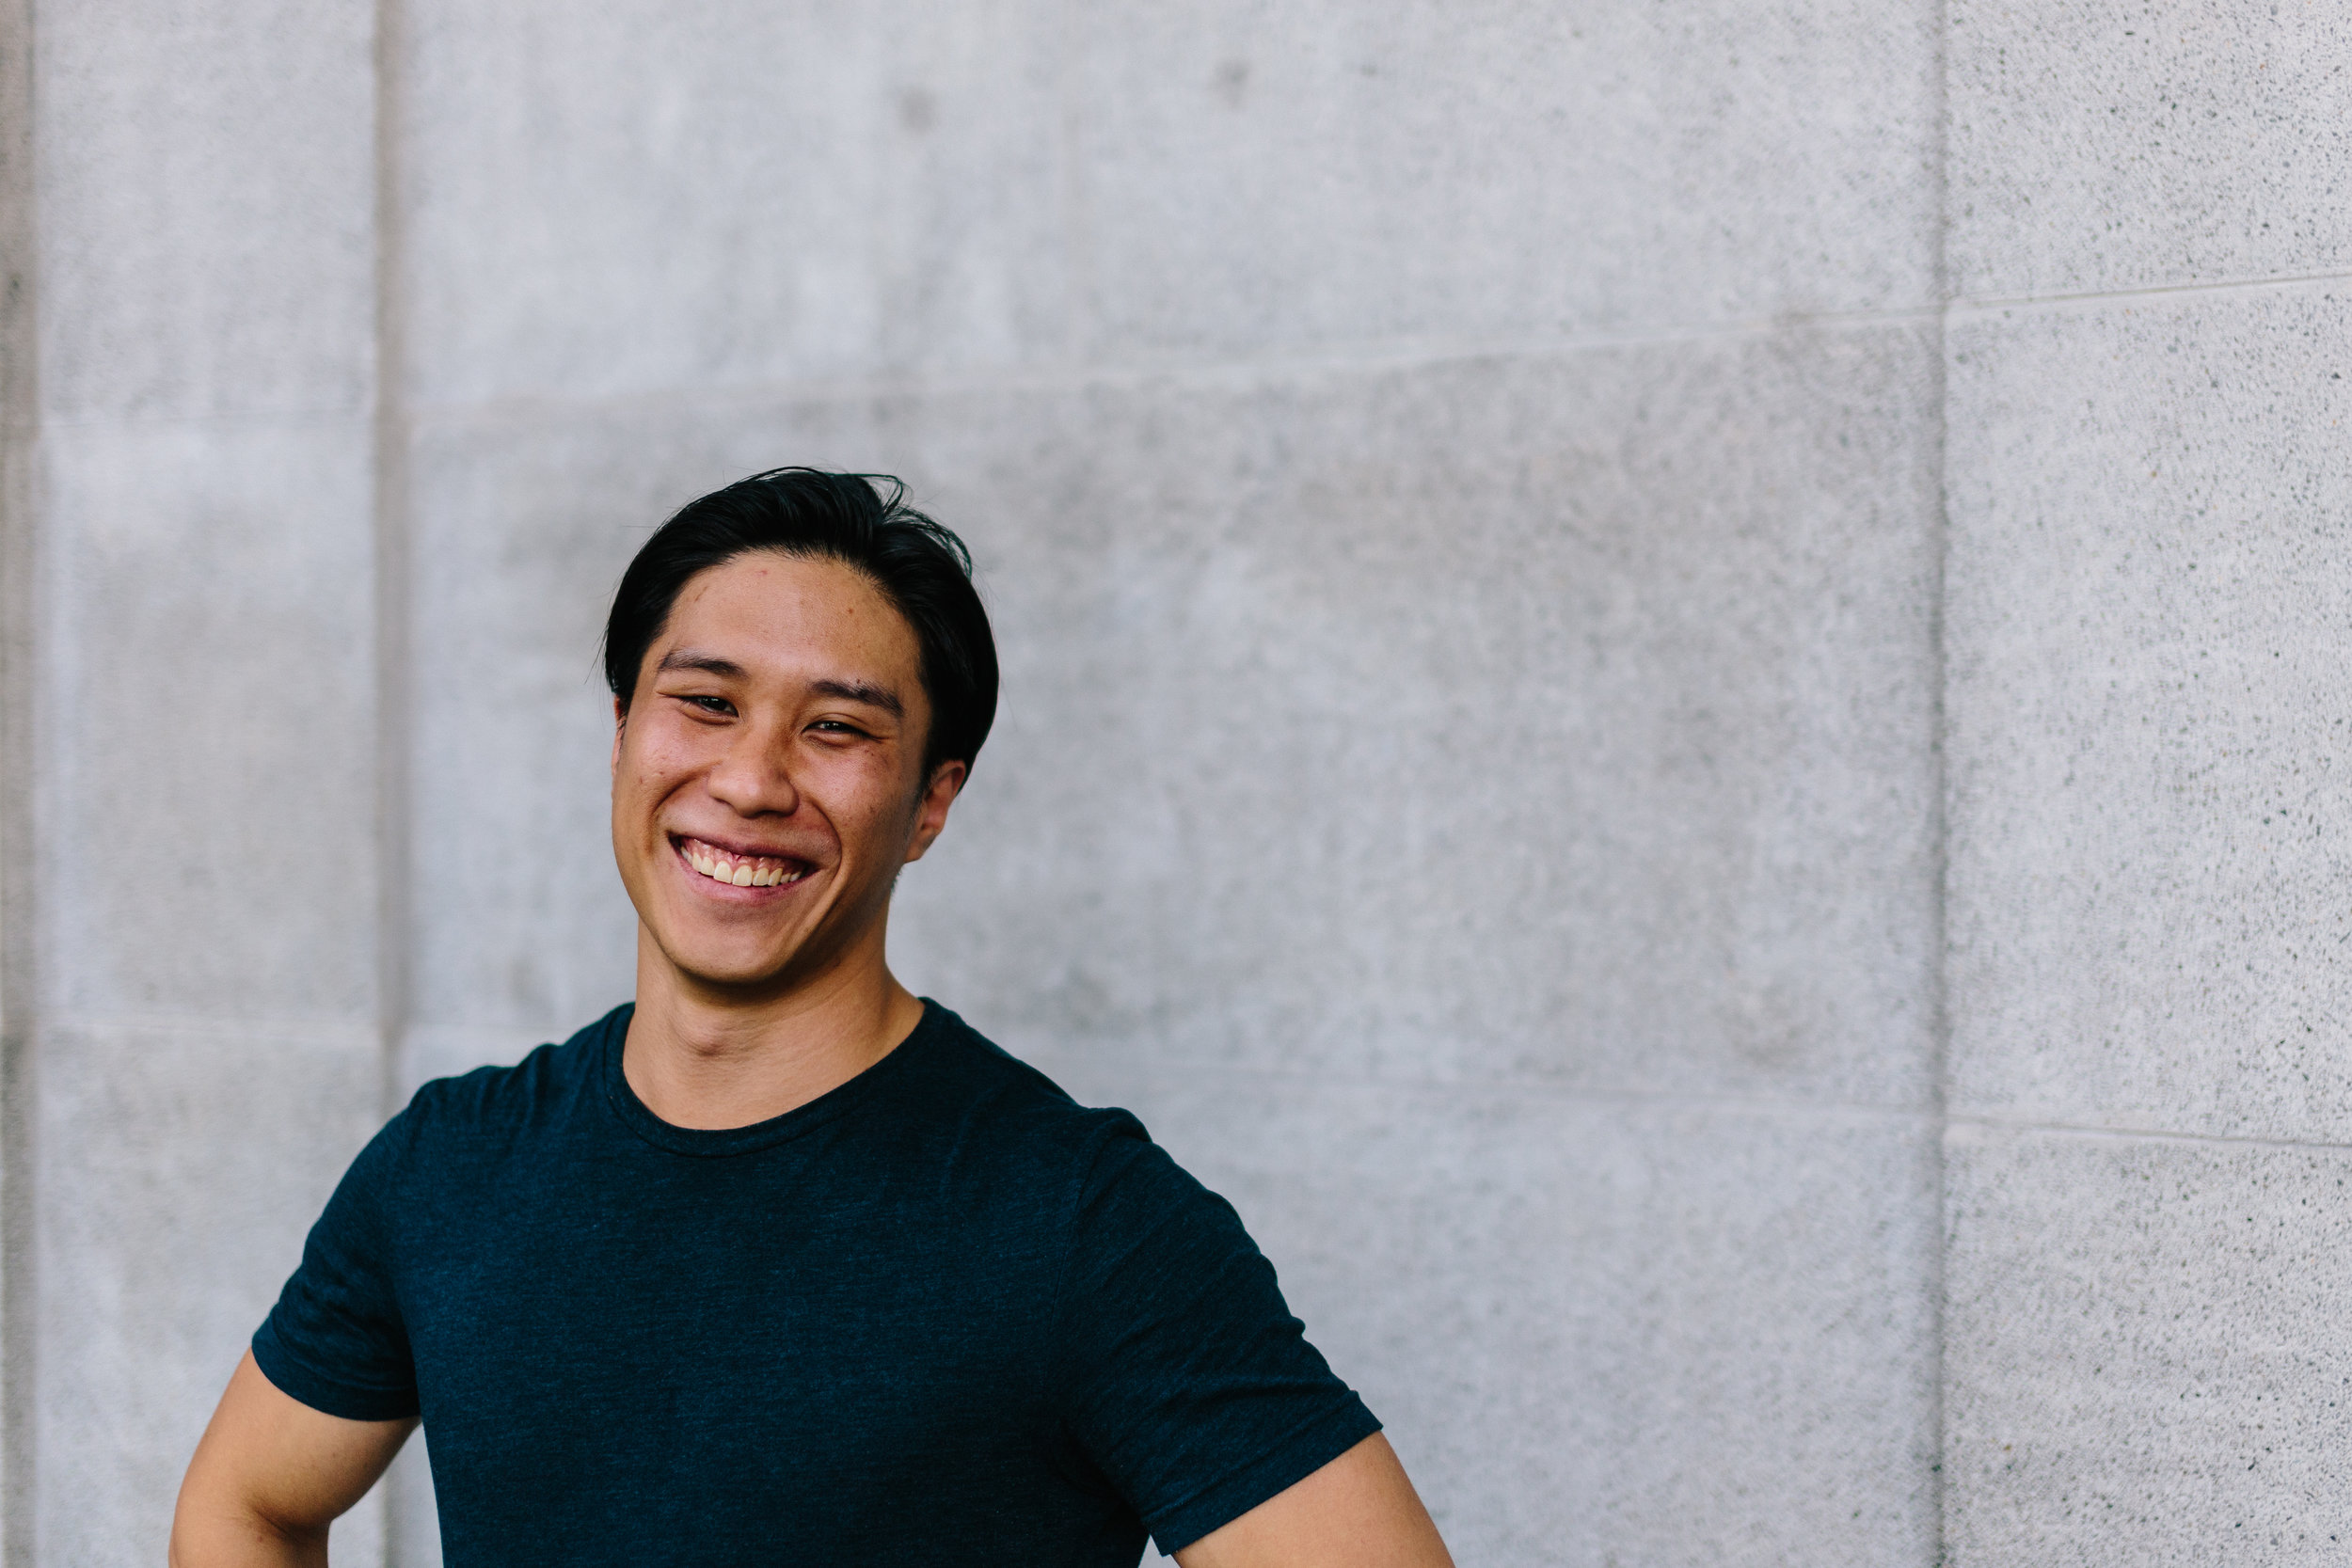 JEREMY TAN - SENIOR TRAINERJeremy is a Level 3 Active IQ and PTA Global Certified Personal Trainer. His study was in Business Administration. He loves TO READ non-fiction, sing & play the acoustic guitar. HE OWNS A CAT CALLED KITTY.